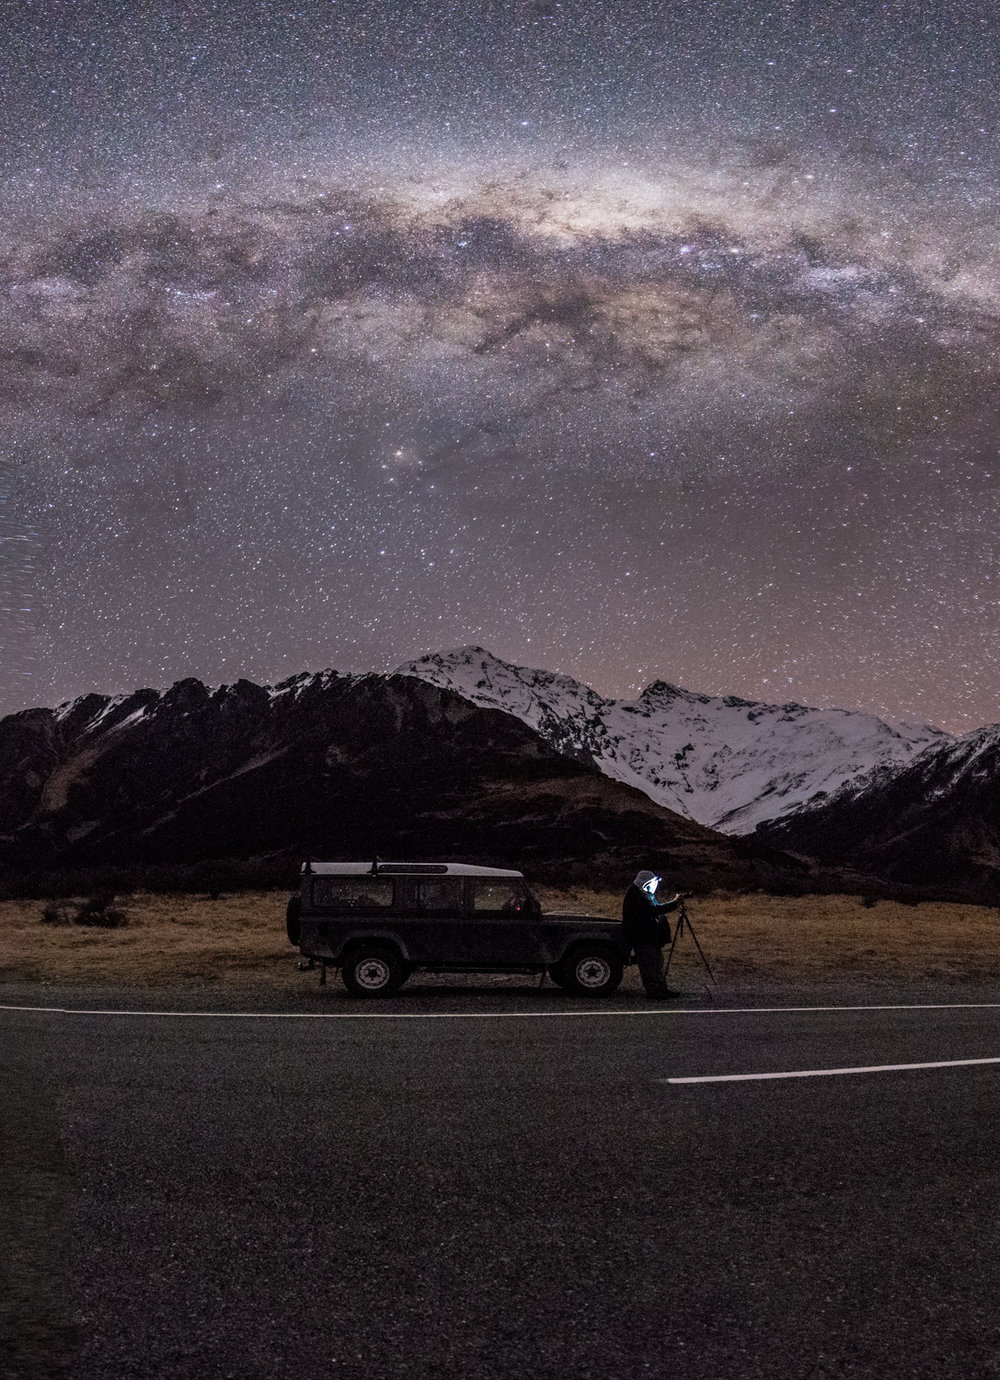 Our Land Rover Defender loves Astro Missions